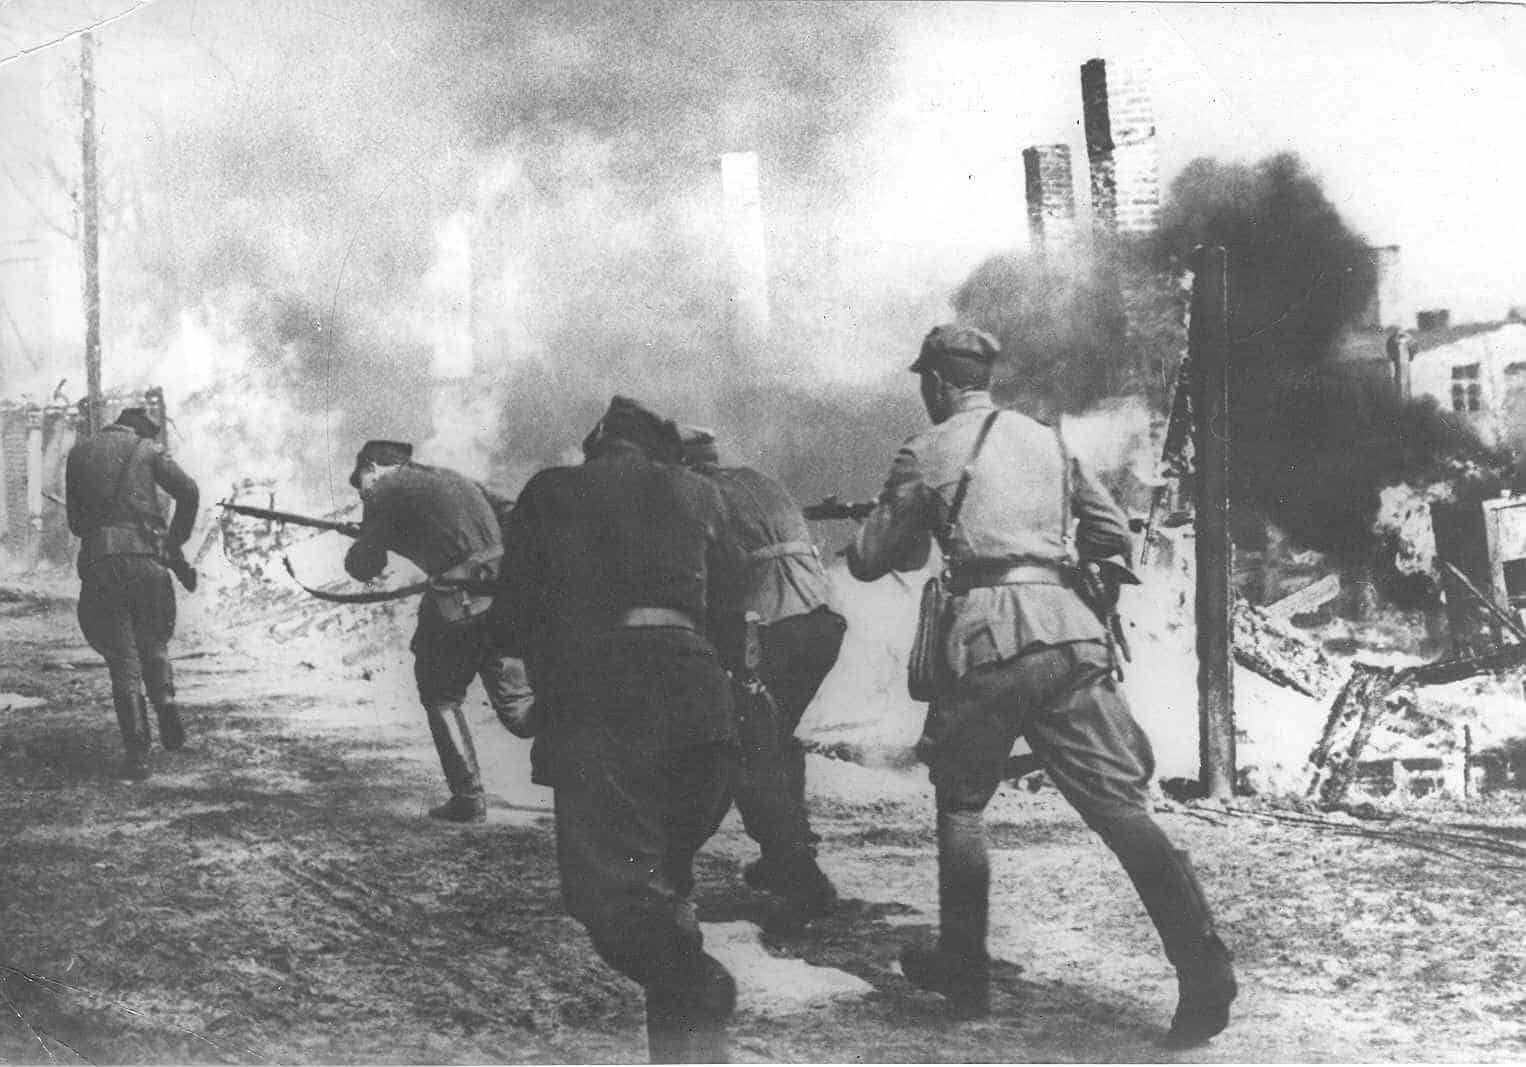 Much of the fighting on May 1st 1945 in the western areas of Berlin was conducted by Polish infantry units